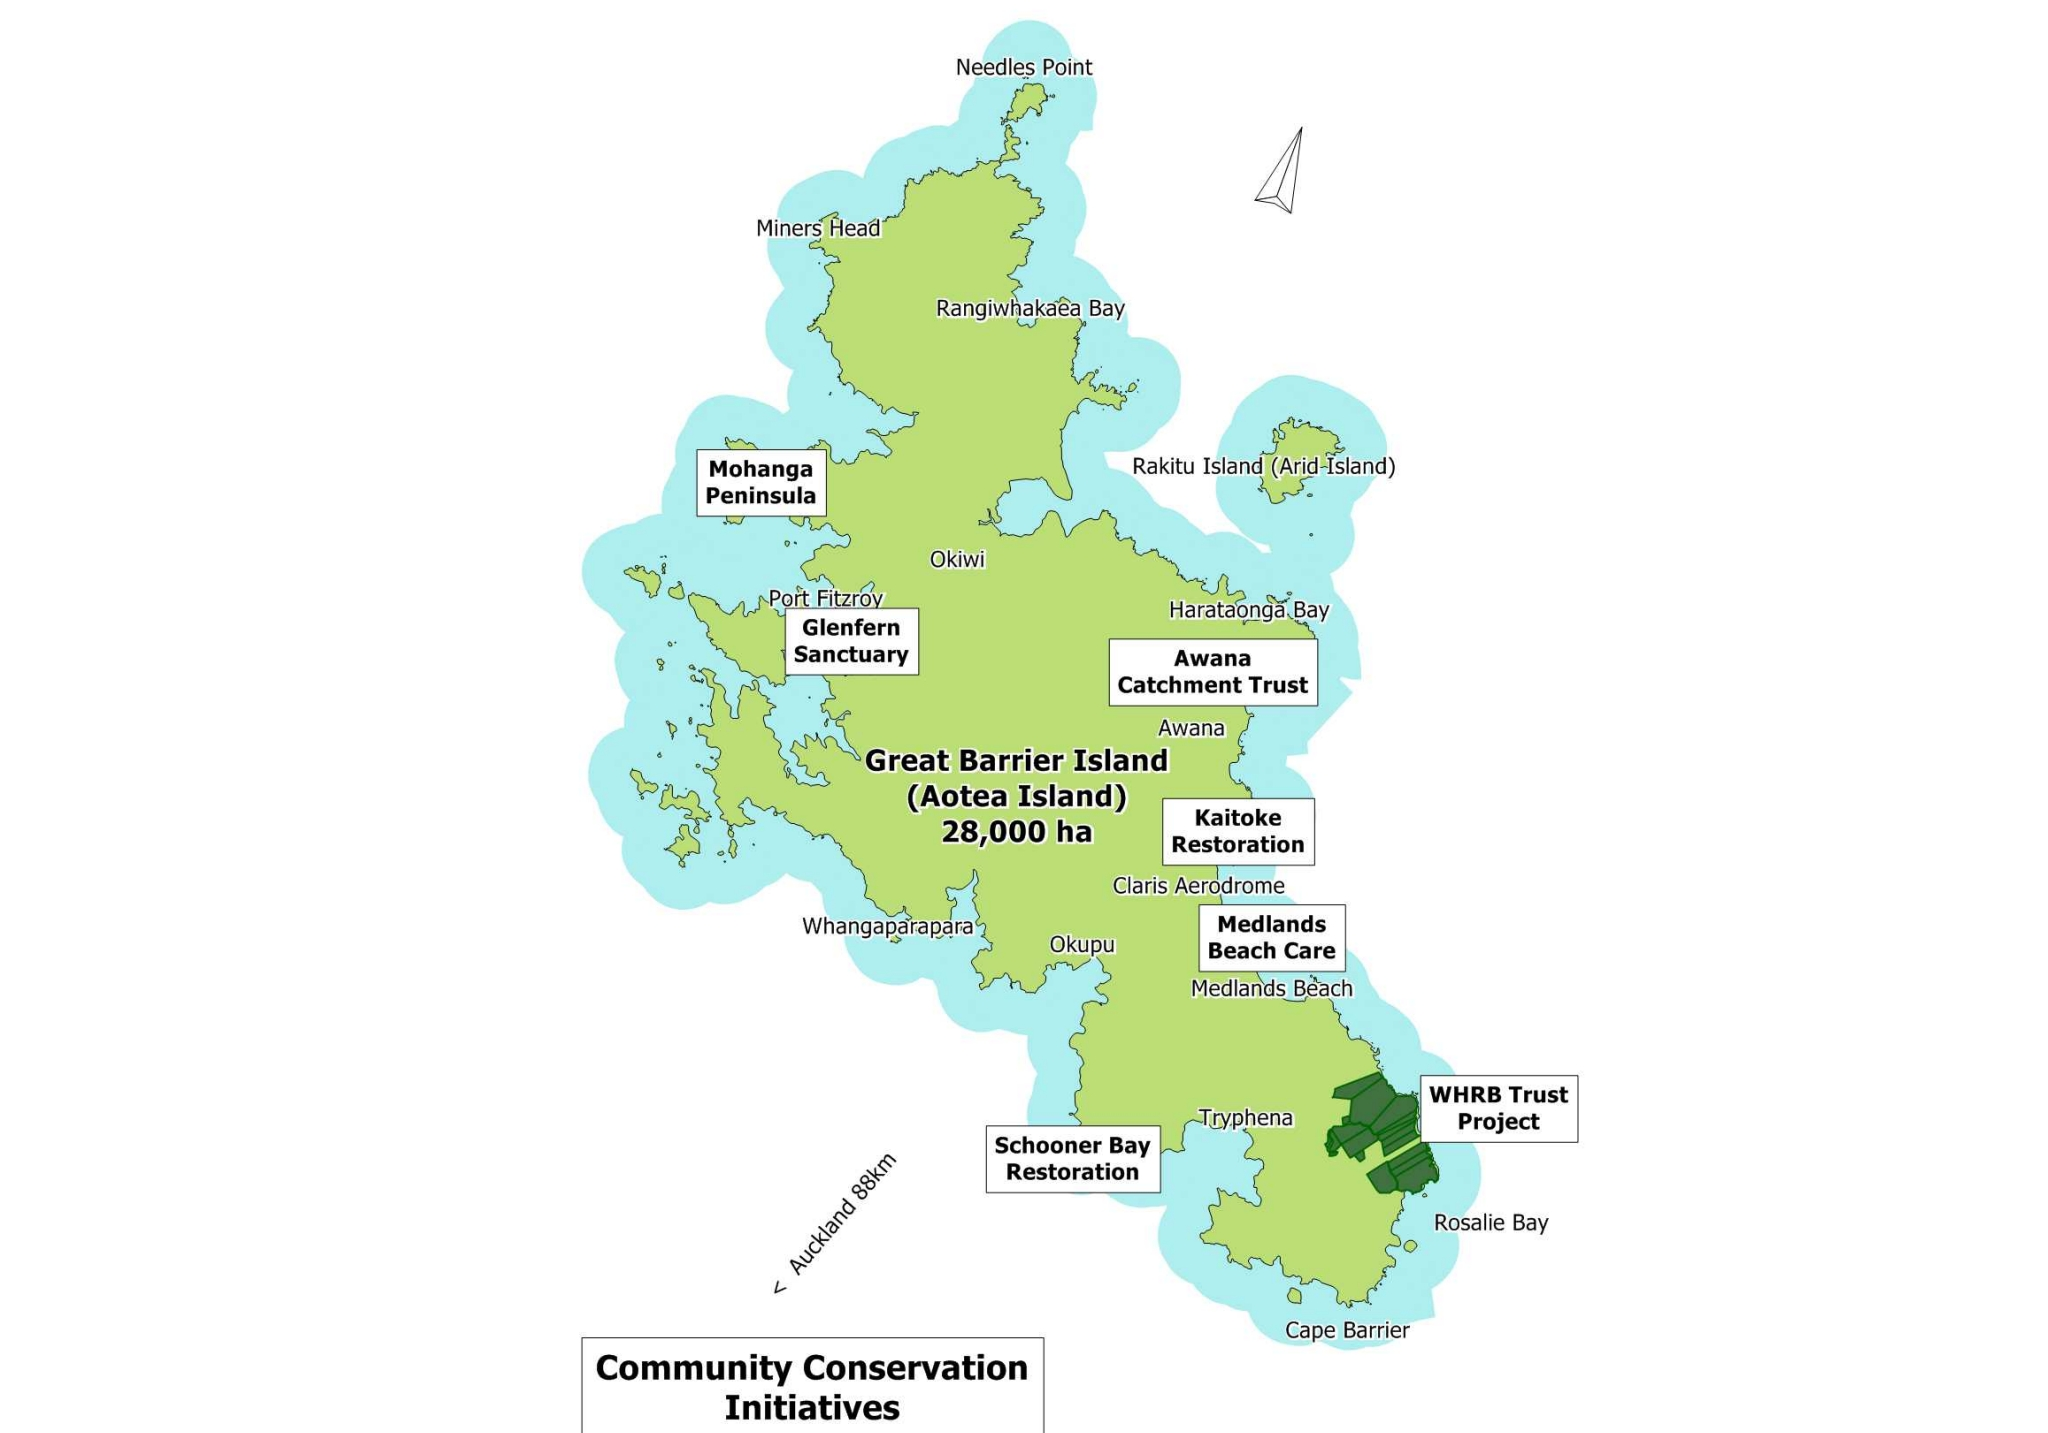 Community Conservation Initiatives